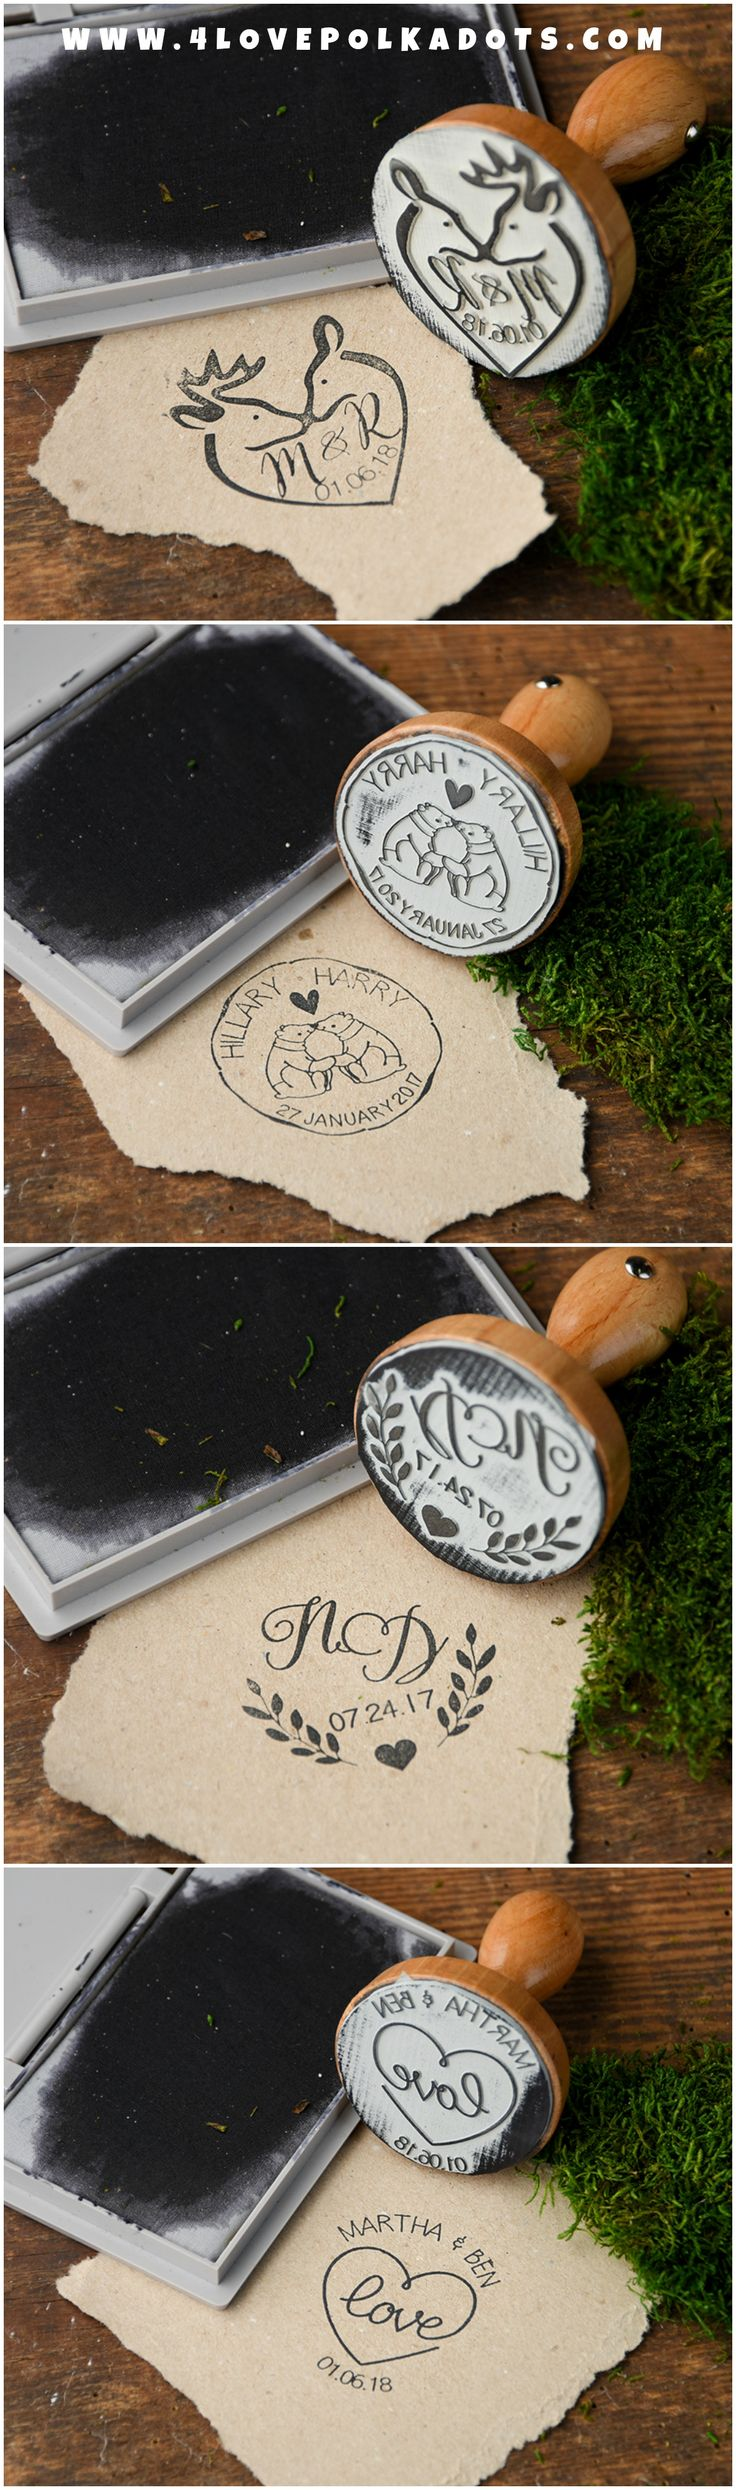 Wooden Wedding Stamps - personalized with names and wedding date #wood #rustic #wooden #weddingideas #stamps #rusticwedding #country